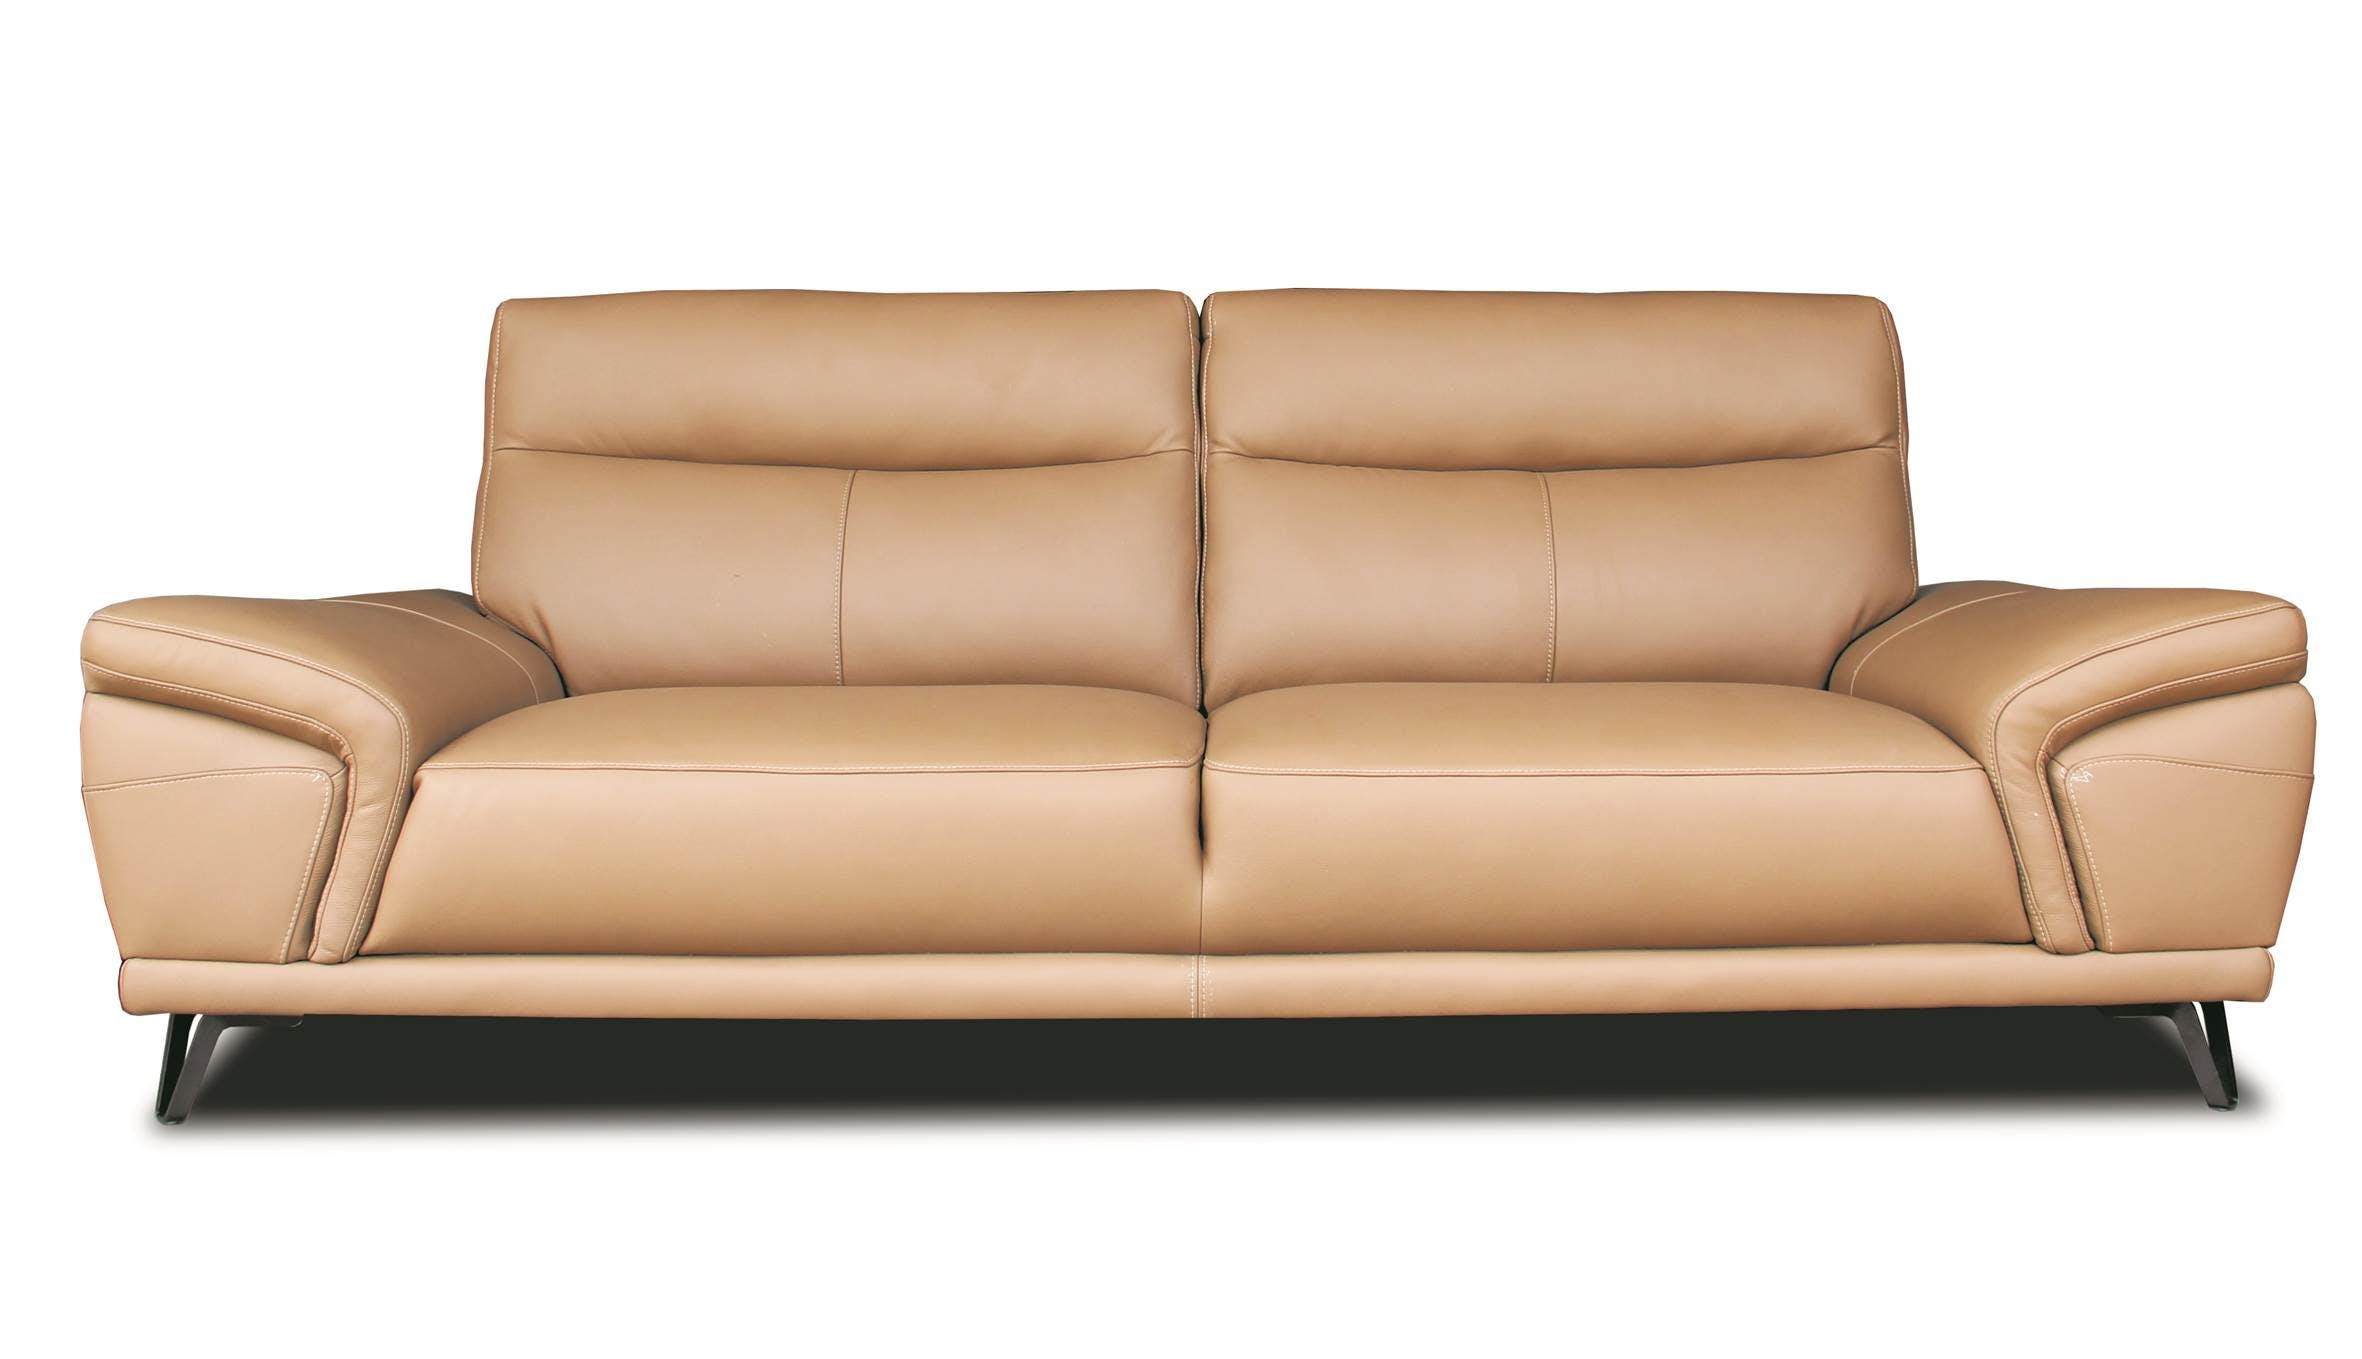 Hilker Kingdom 3-Seater Leather Sofa